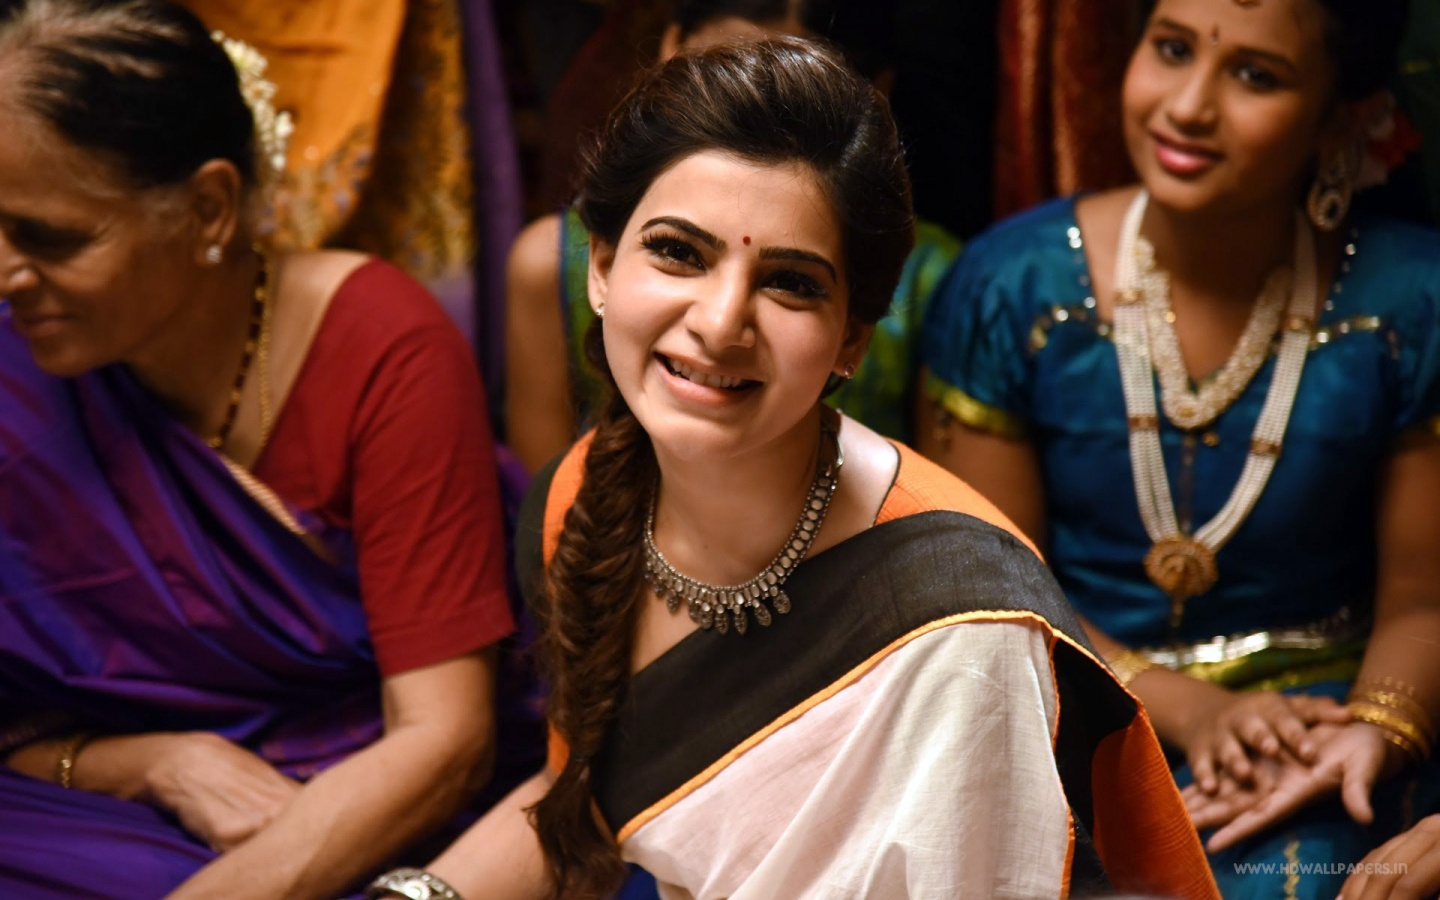 Samantha Tamil Movie Actress Wallpapers In Jpg Format For